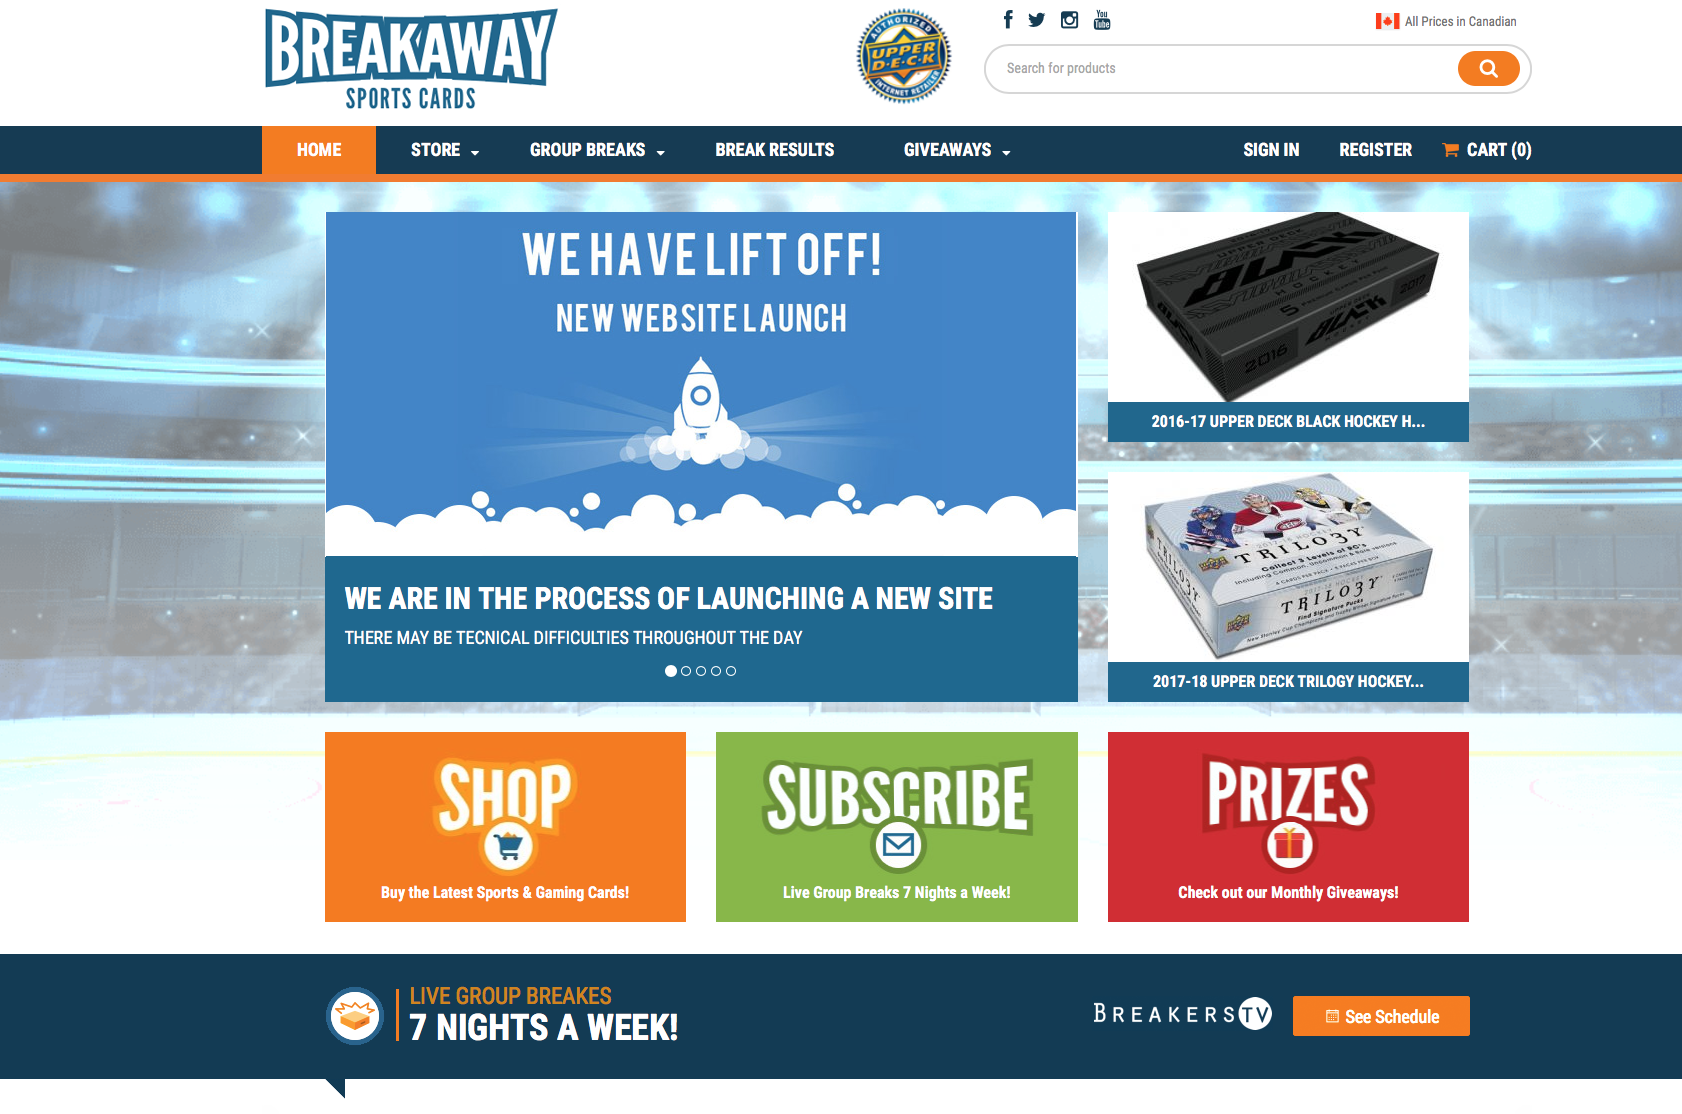 Another great new website from our friends at Breakaway Sports Cards in Hamilton!